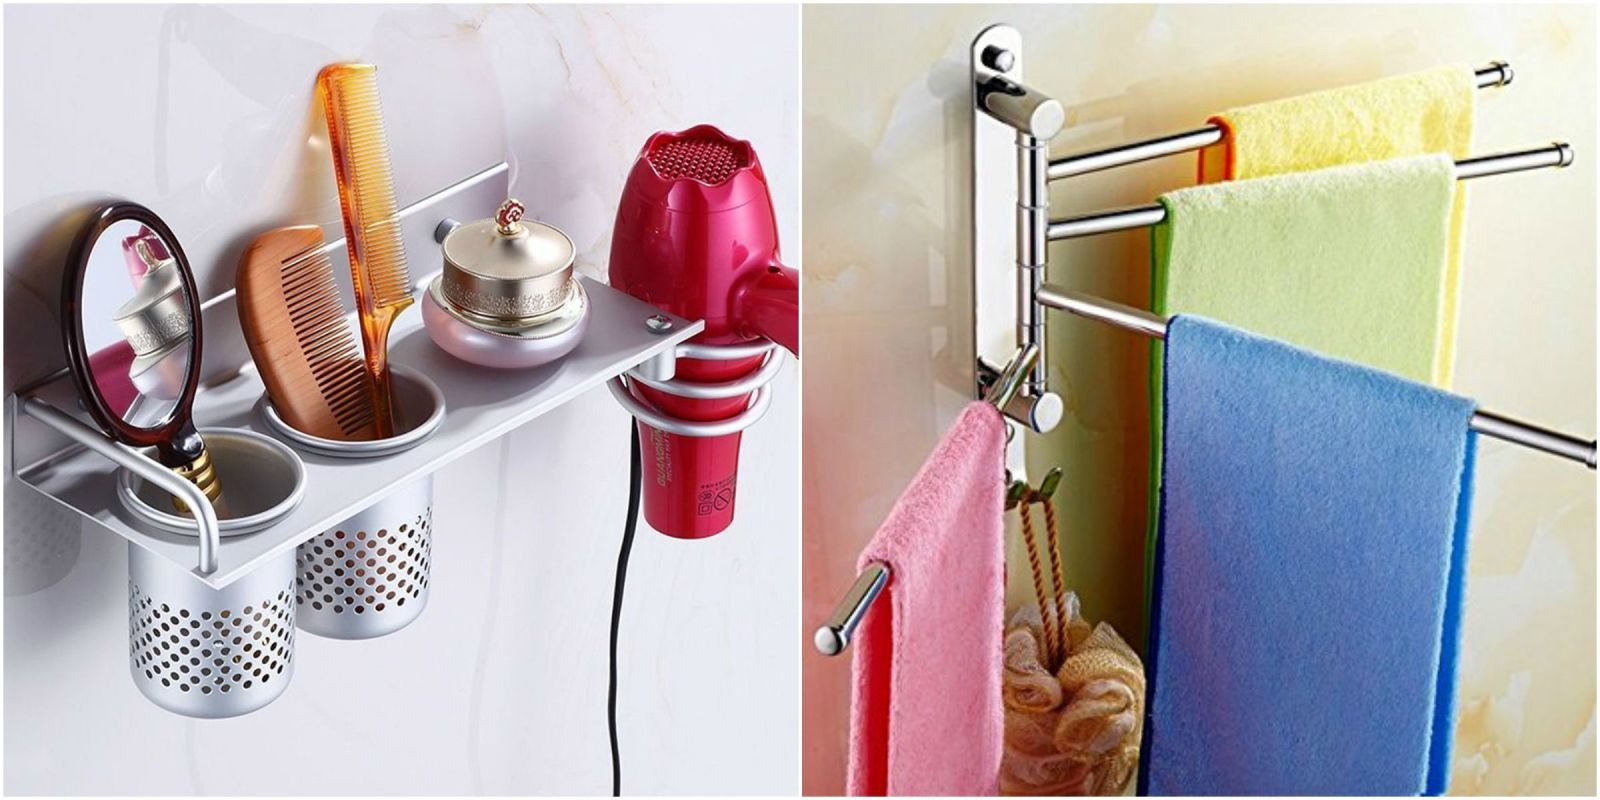 Bathroom organizers - Bathroom Organizers 15